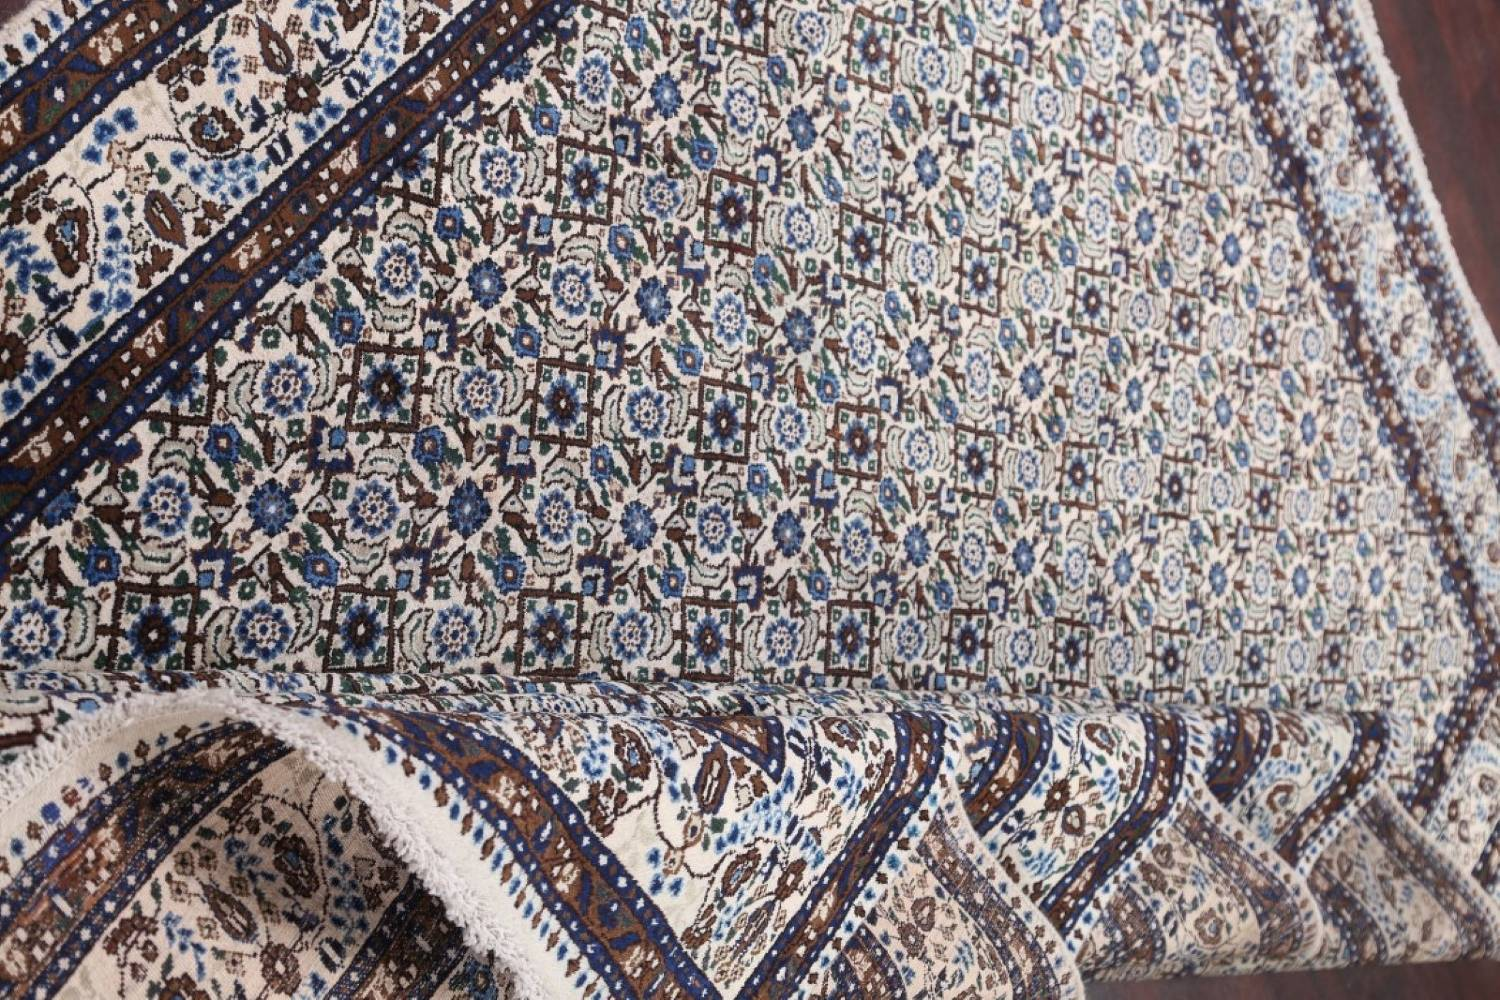 All-Over Floral 7x11 Mood Persian Wool Area Rug image 15